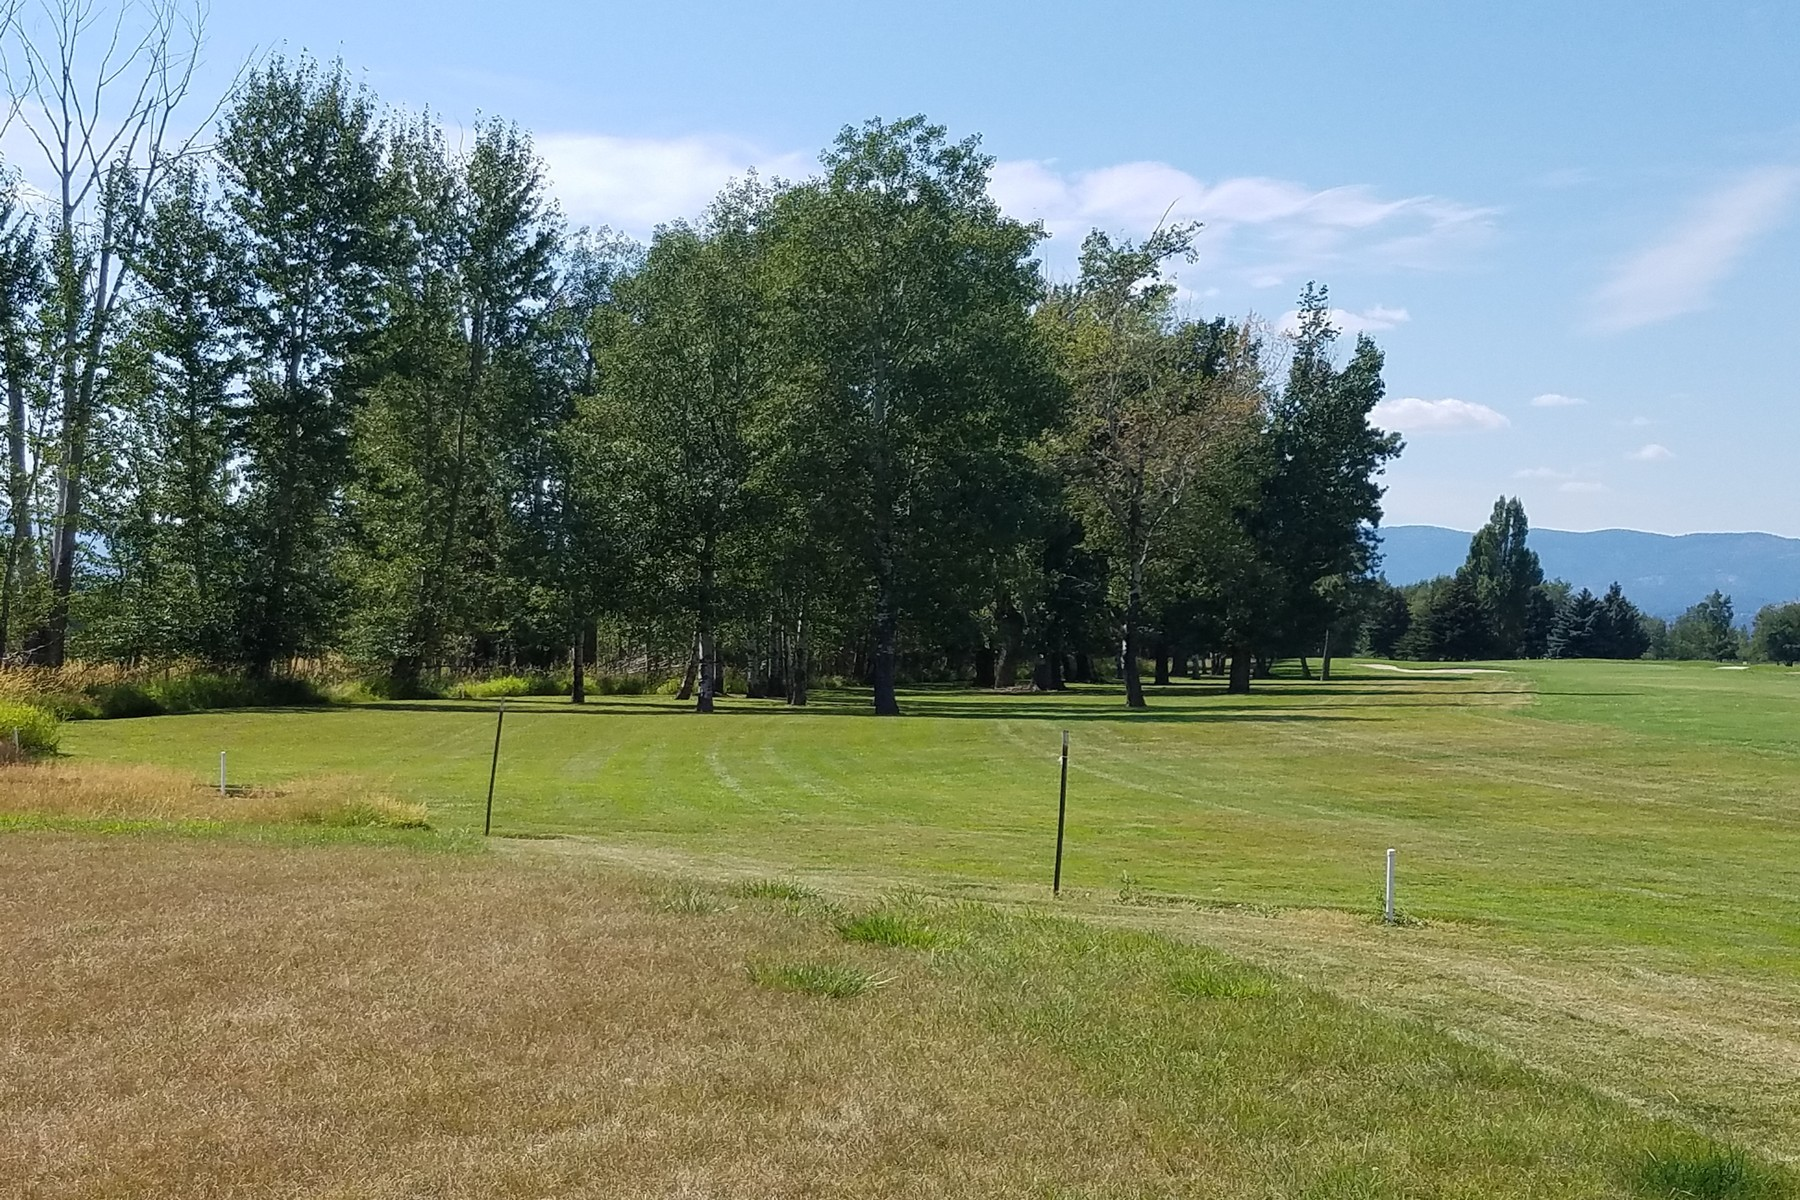 Additional photo for property listing at 71 Lake Pointe Ct , Bigfork, MT 59911 71  Lake Pointe Ct Bigfork, Montana 59911 United States